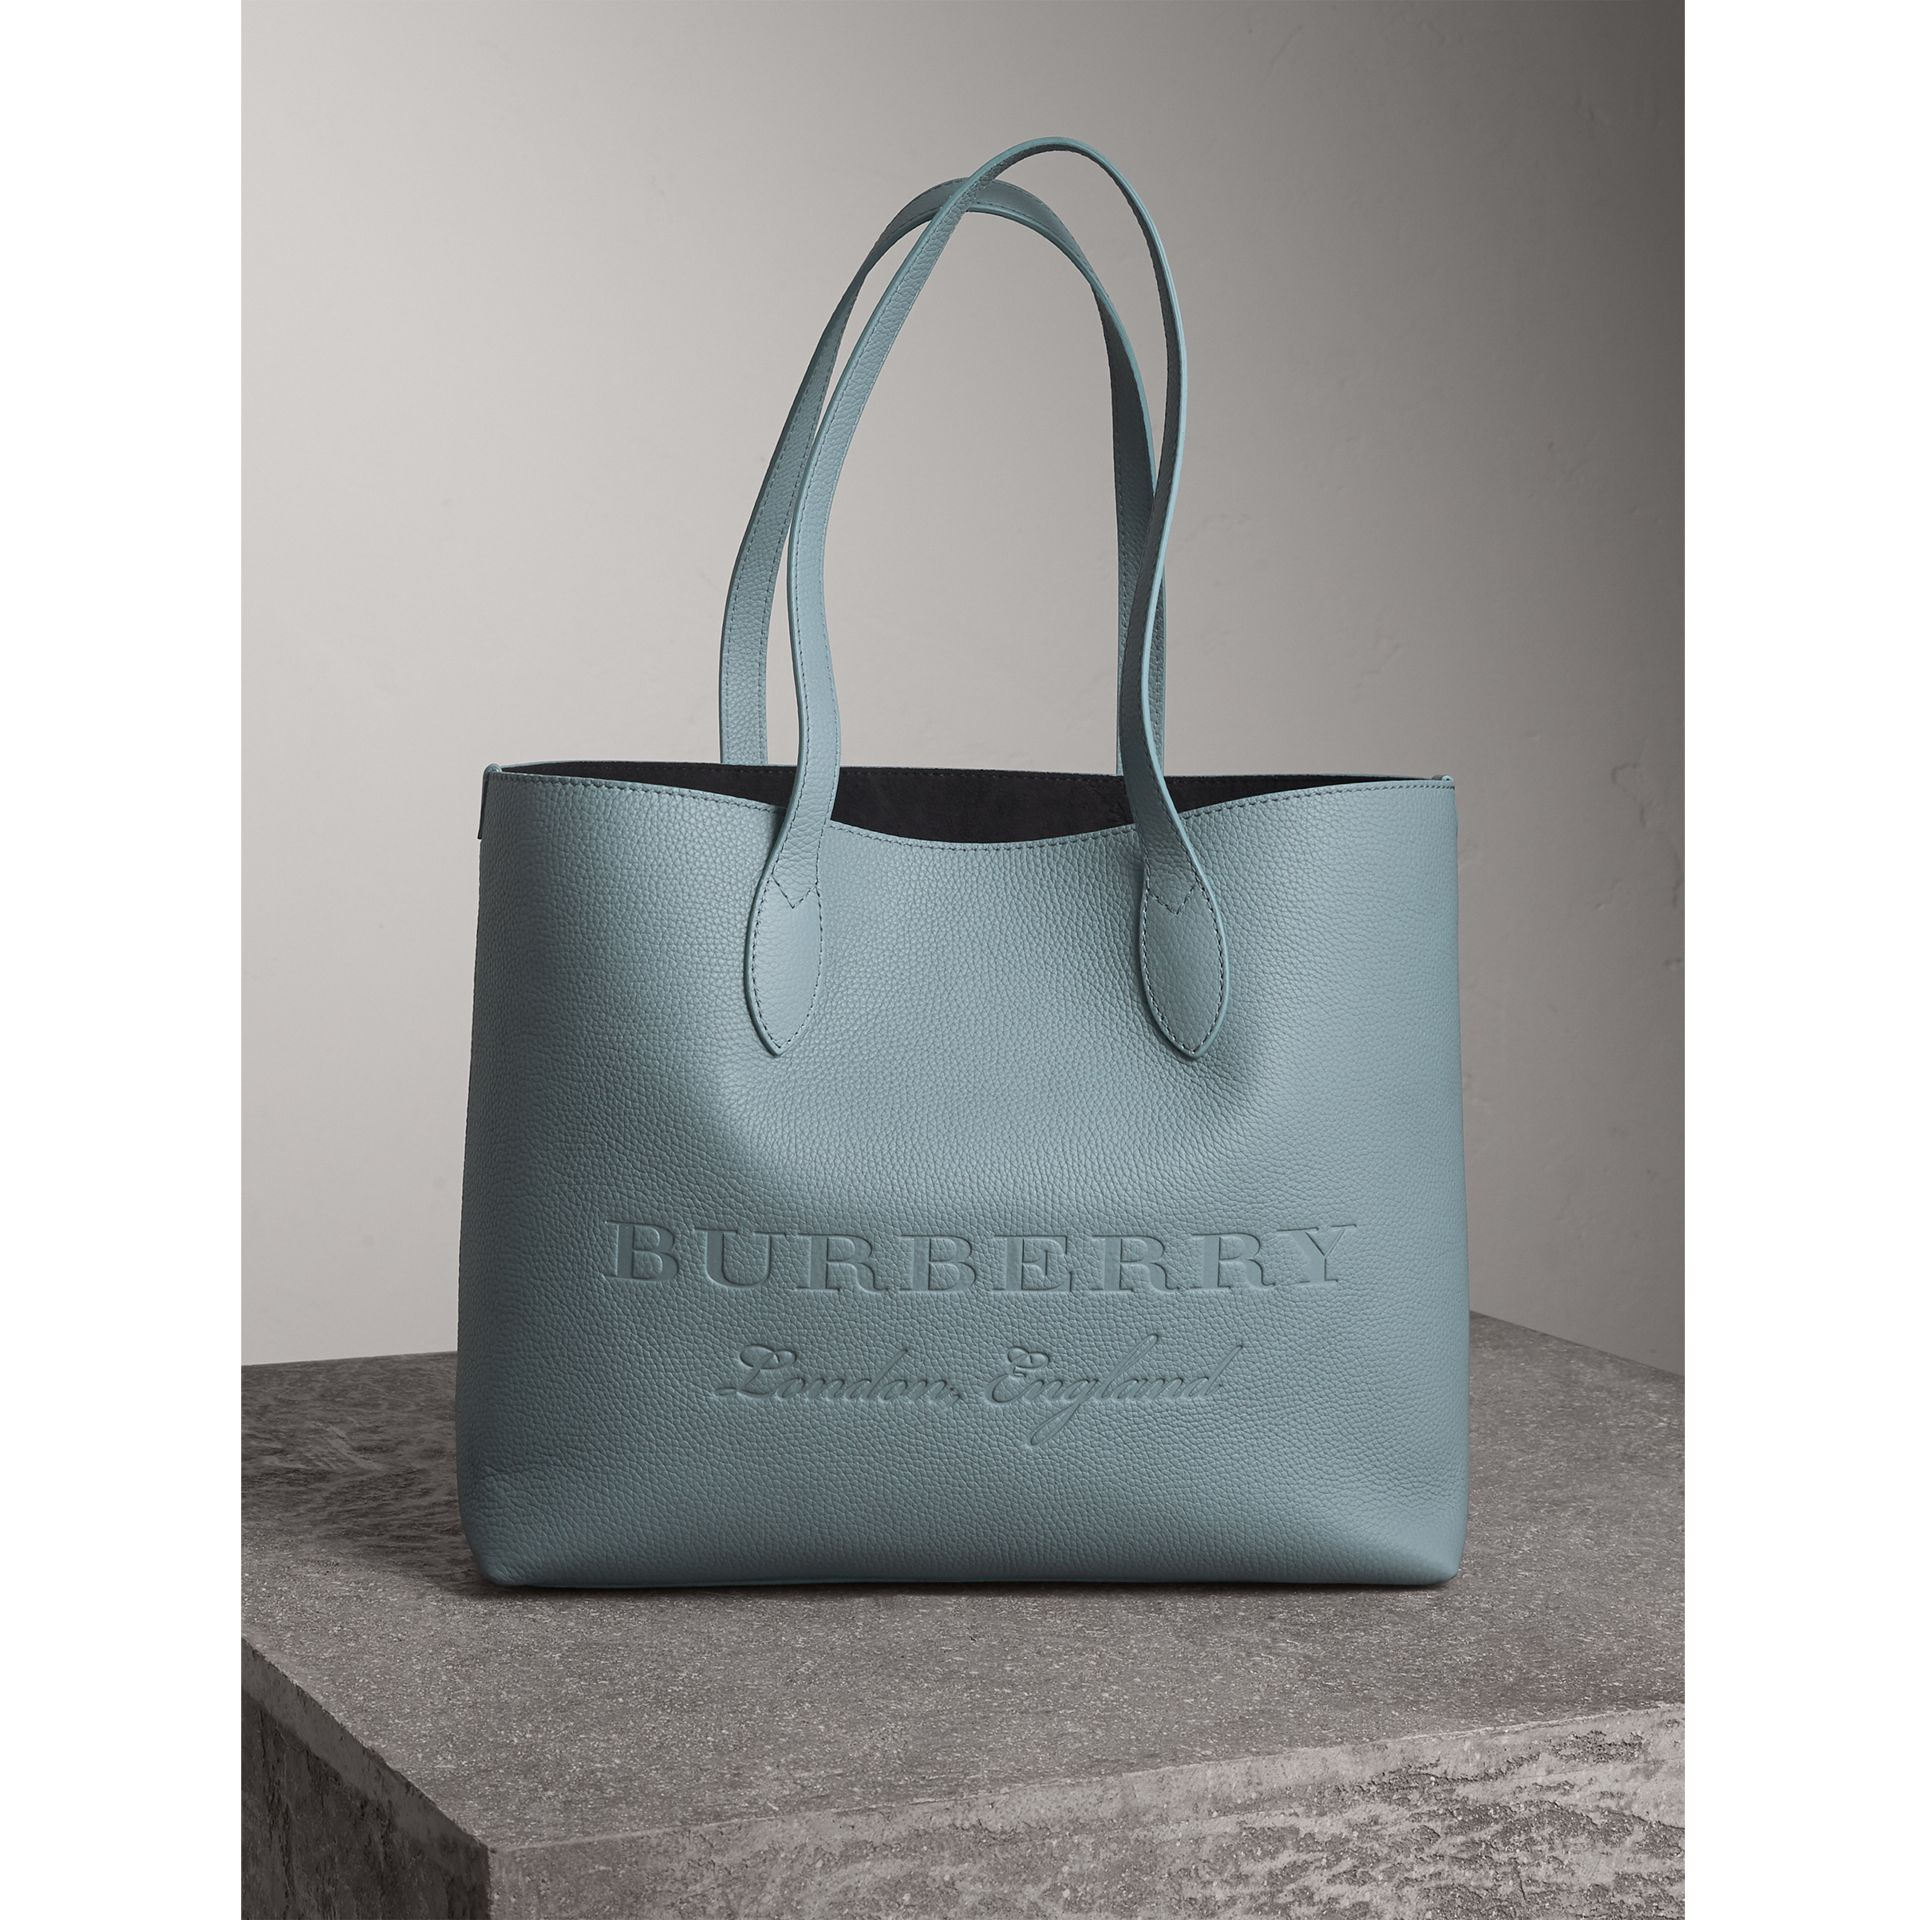 Medium Embossed Leather Tote in Dusty Teal Blue | Burberry - gallery image 1